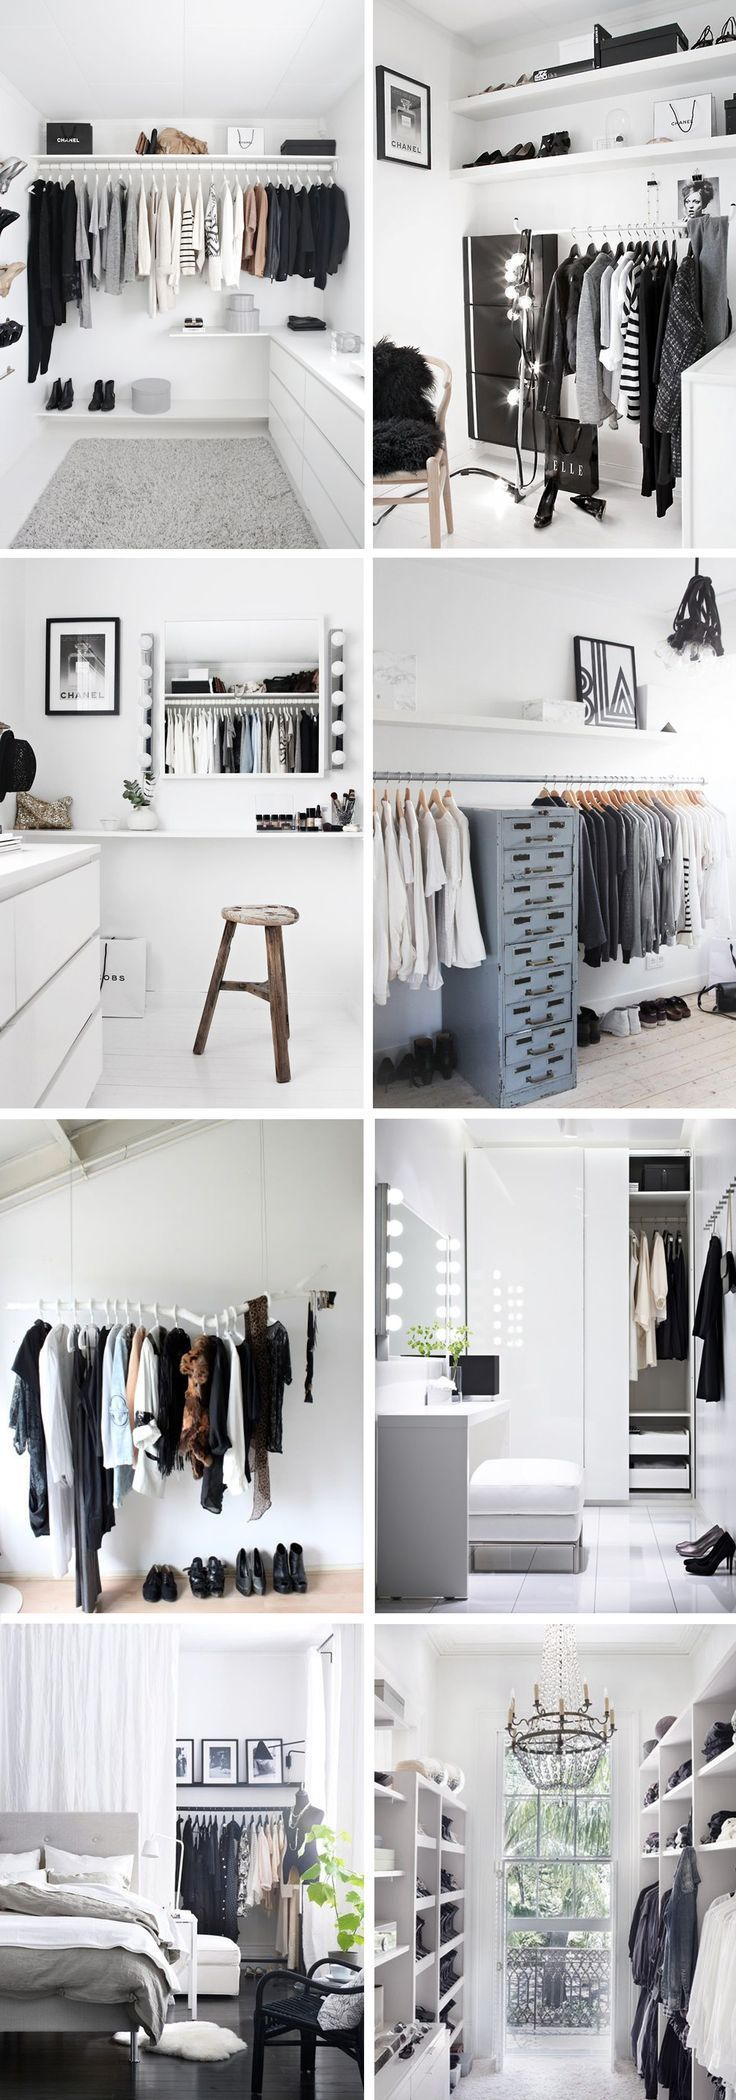 wardrobe inspiration christina dueholm wohnen pinterest kleiderschrank schrank und. Black Bedroom Furniture Sets. Home Design Ideas